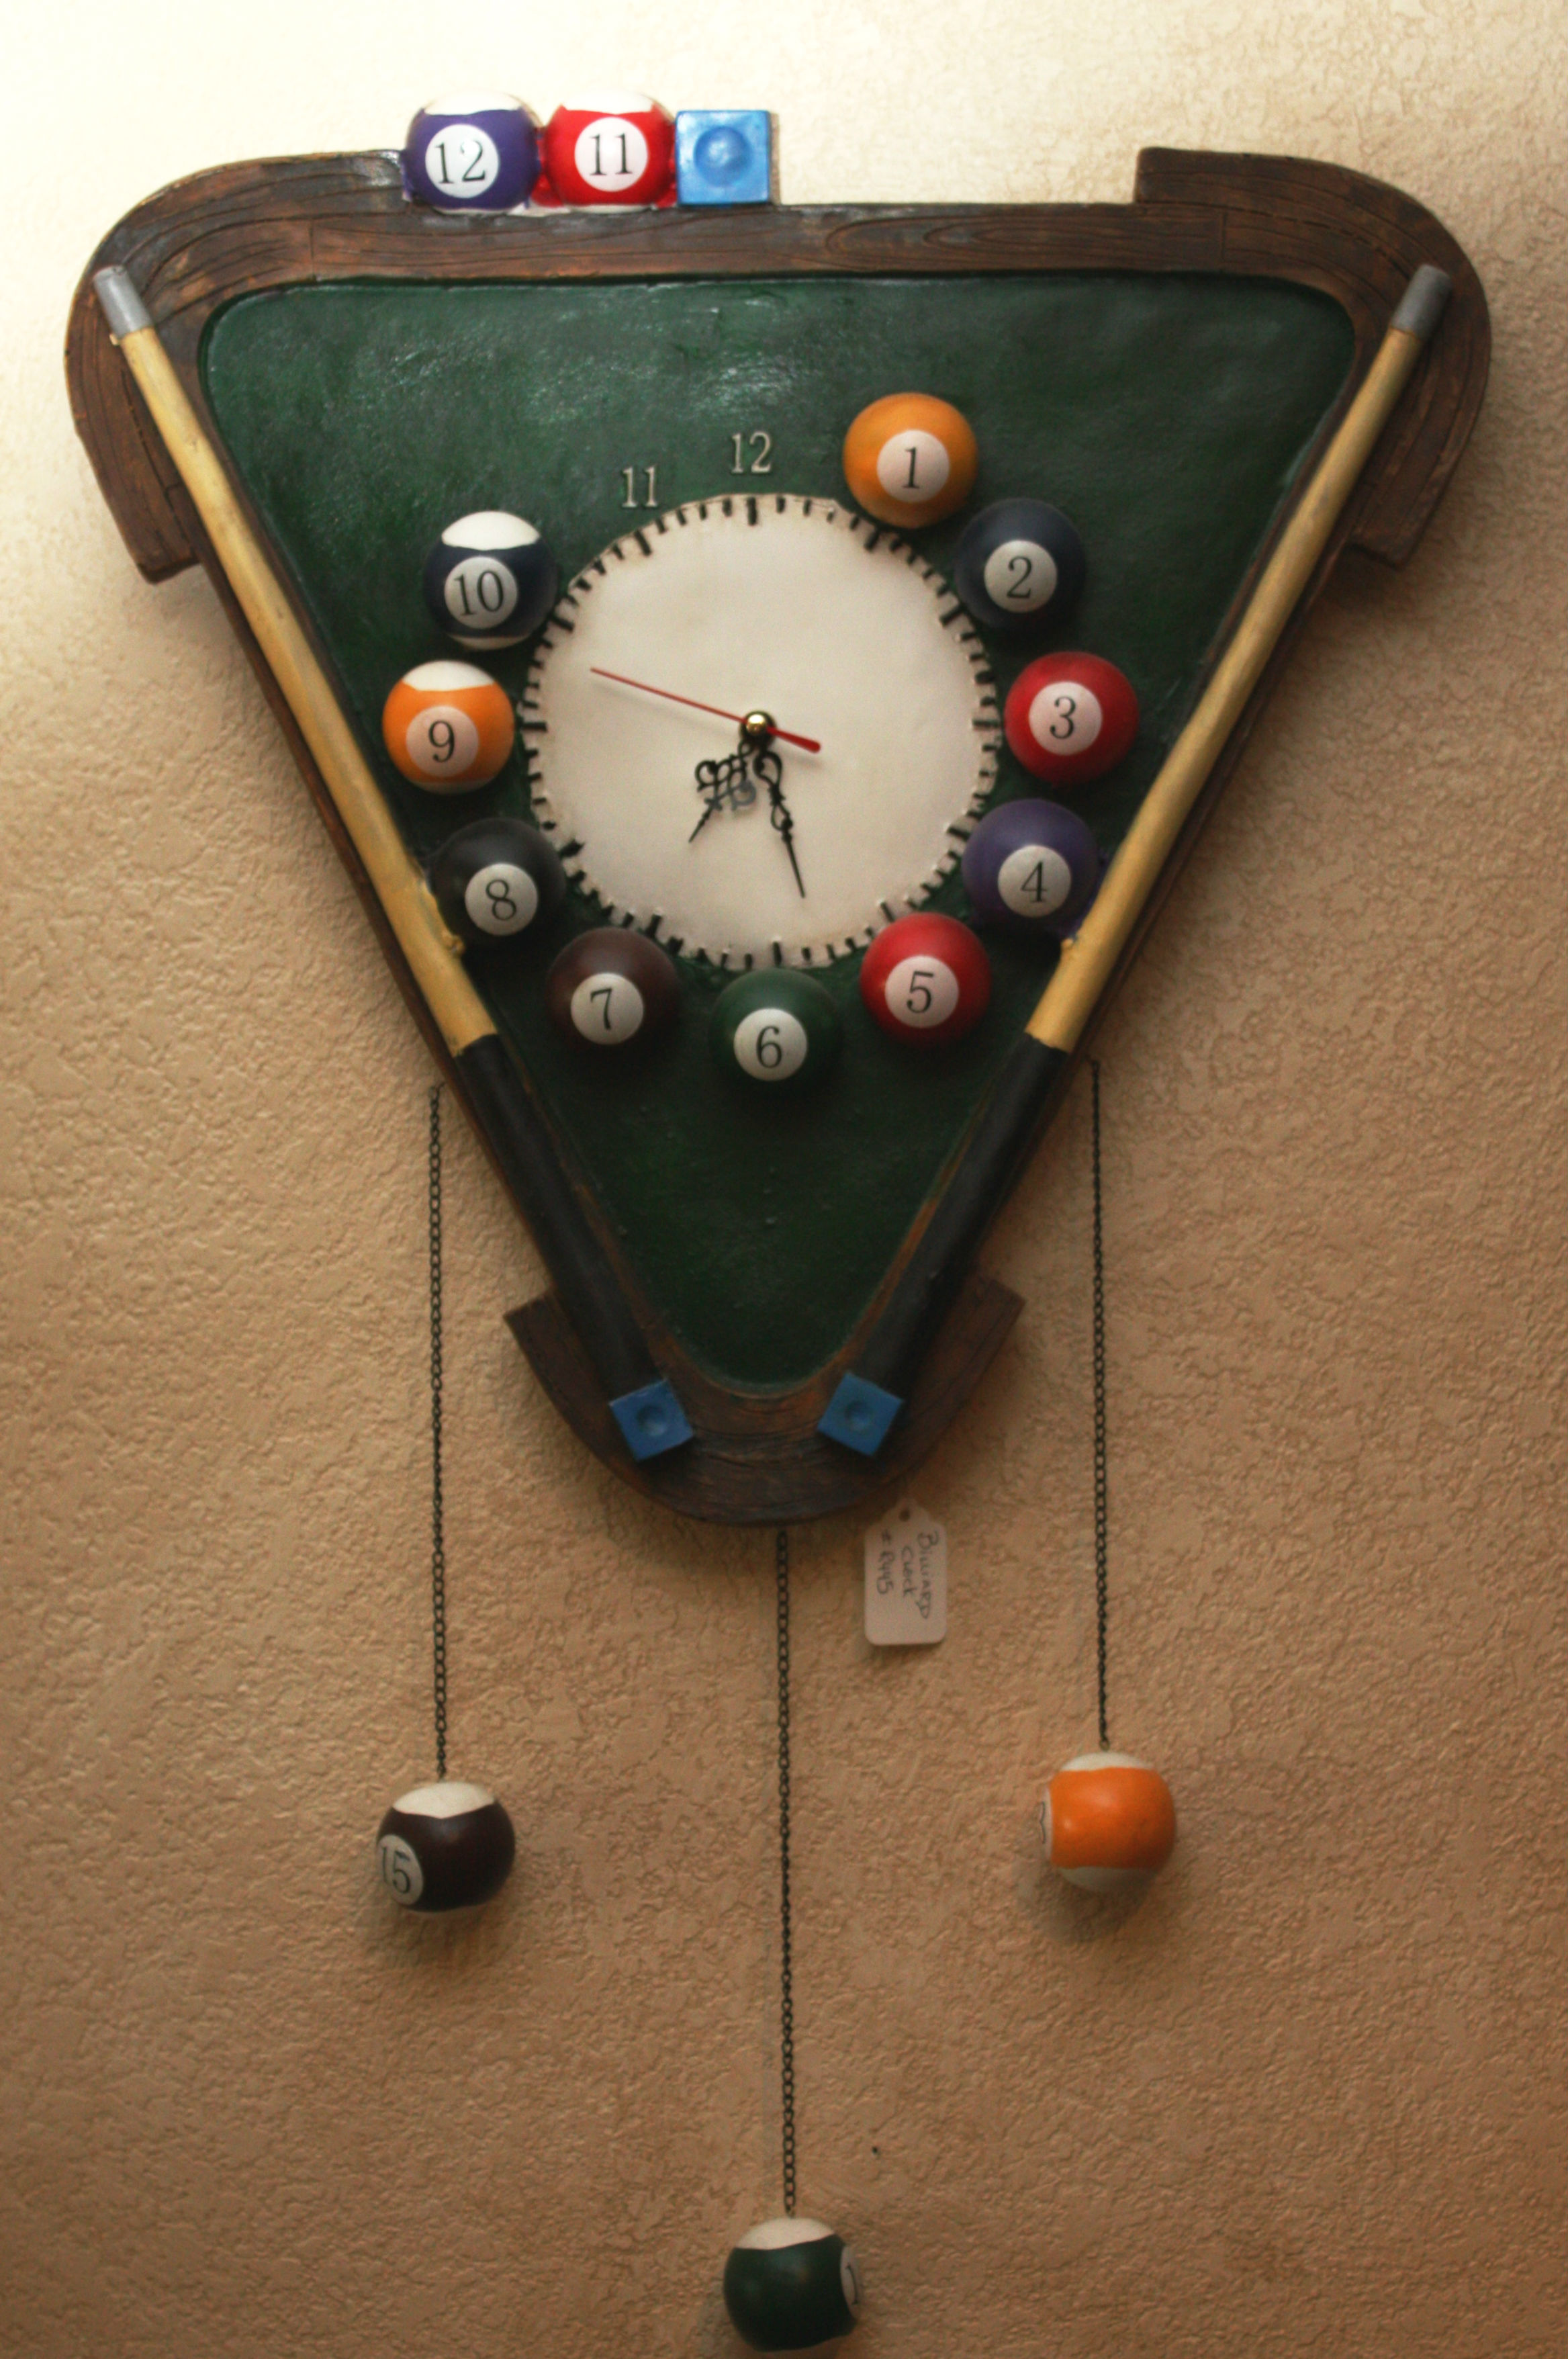 ART17: BILLIARDS CLOCK